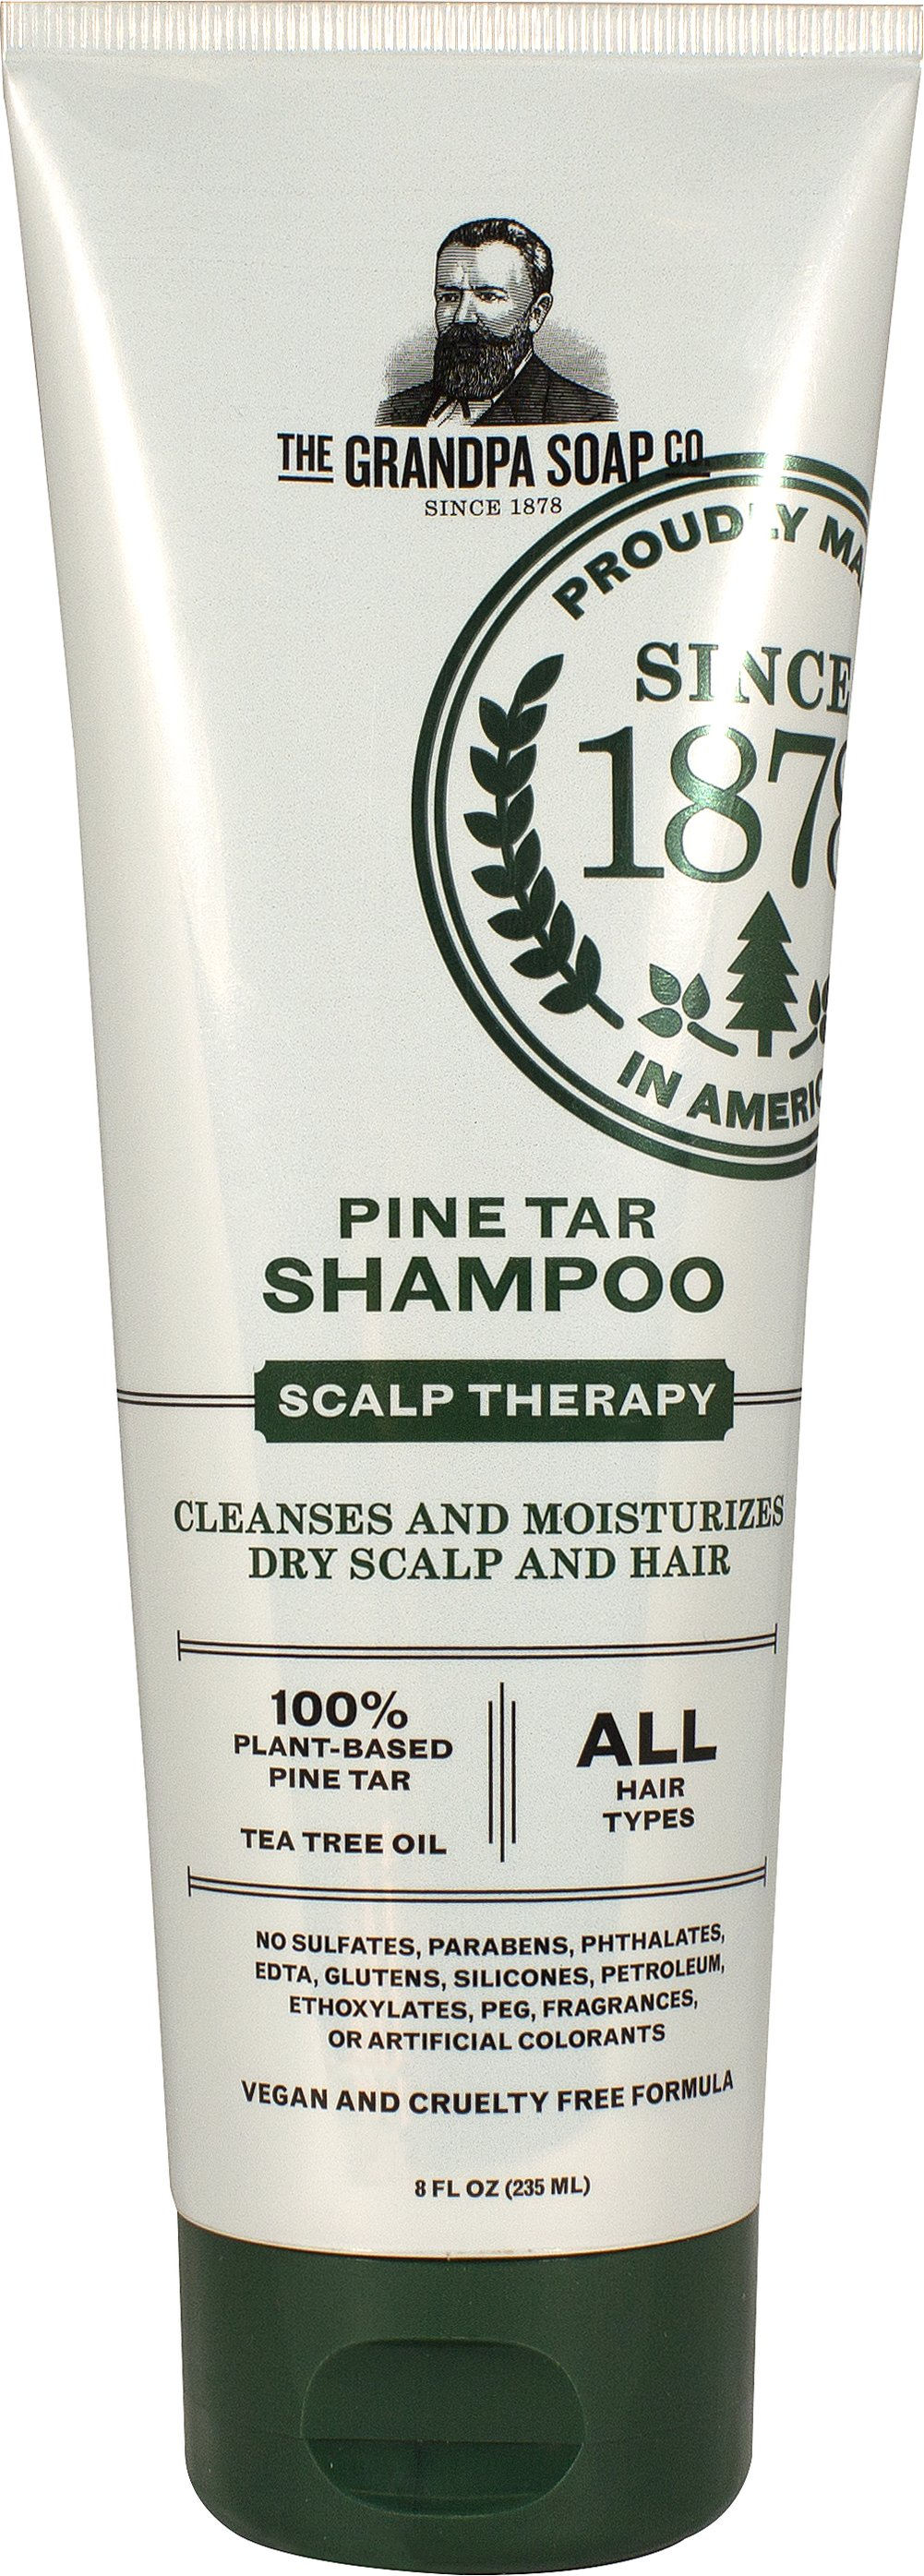 Pine Tar Shampoo Thumbnail Alternate Bottle View